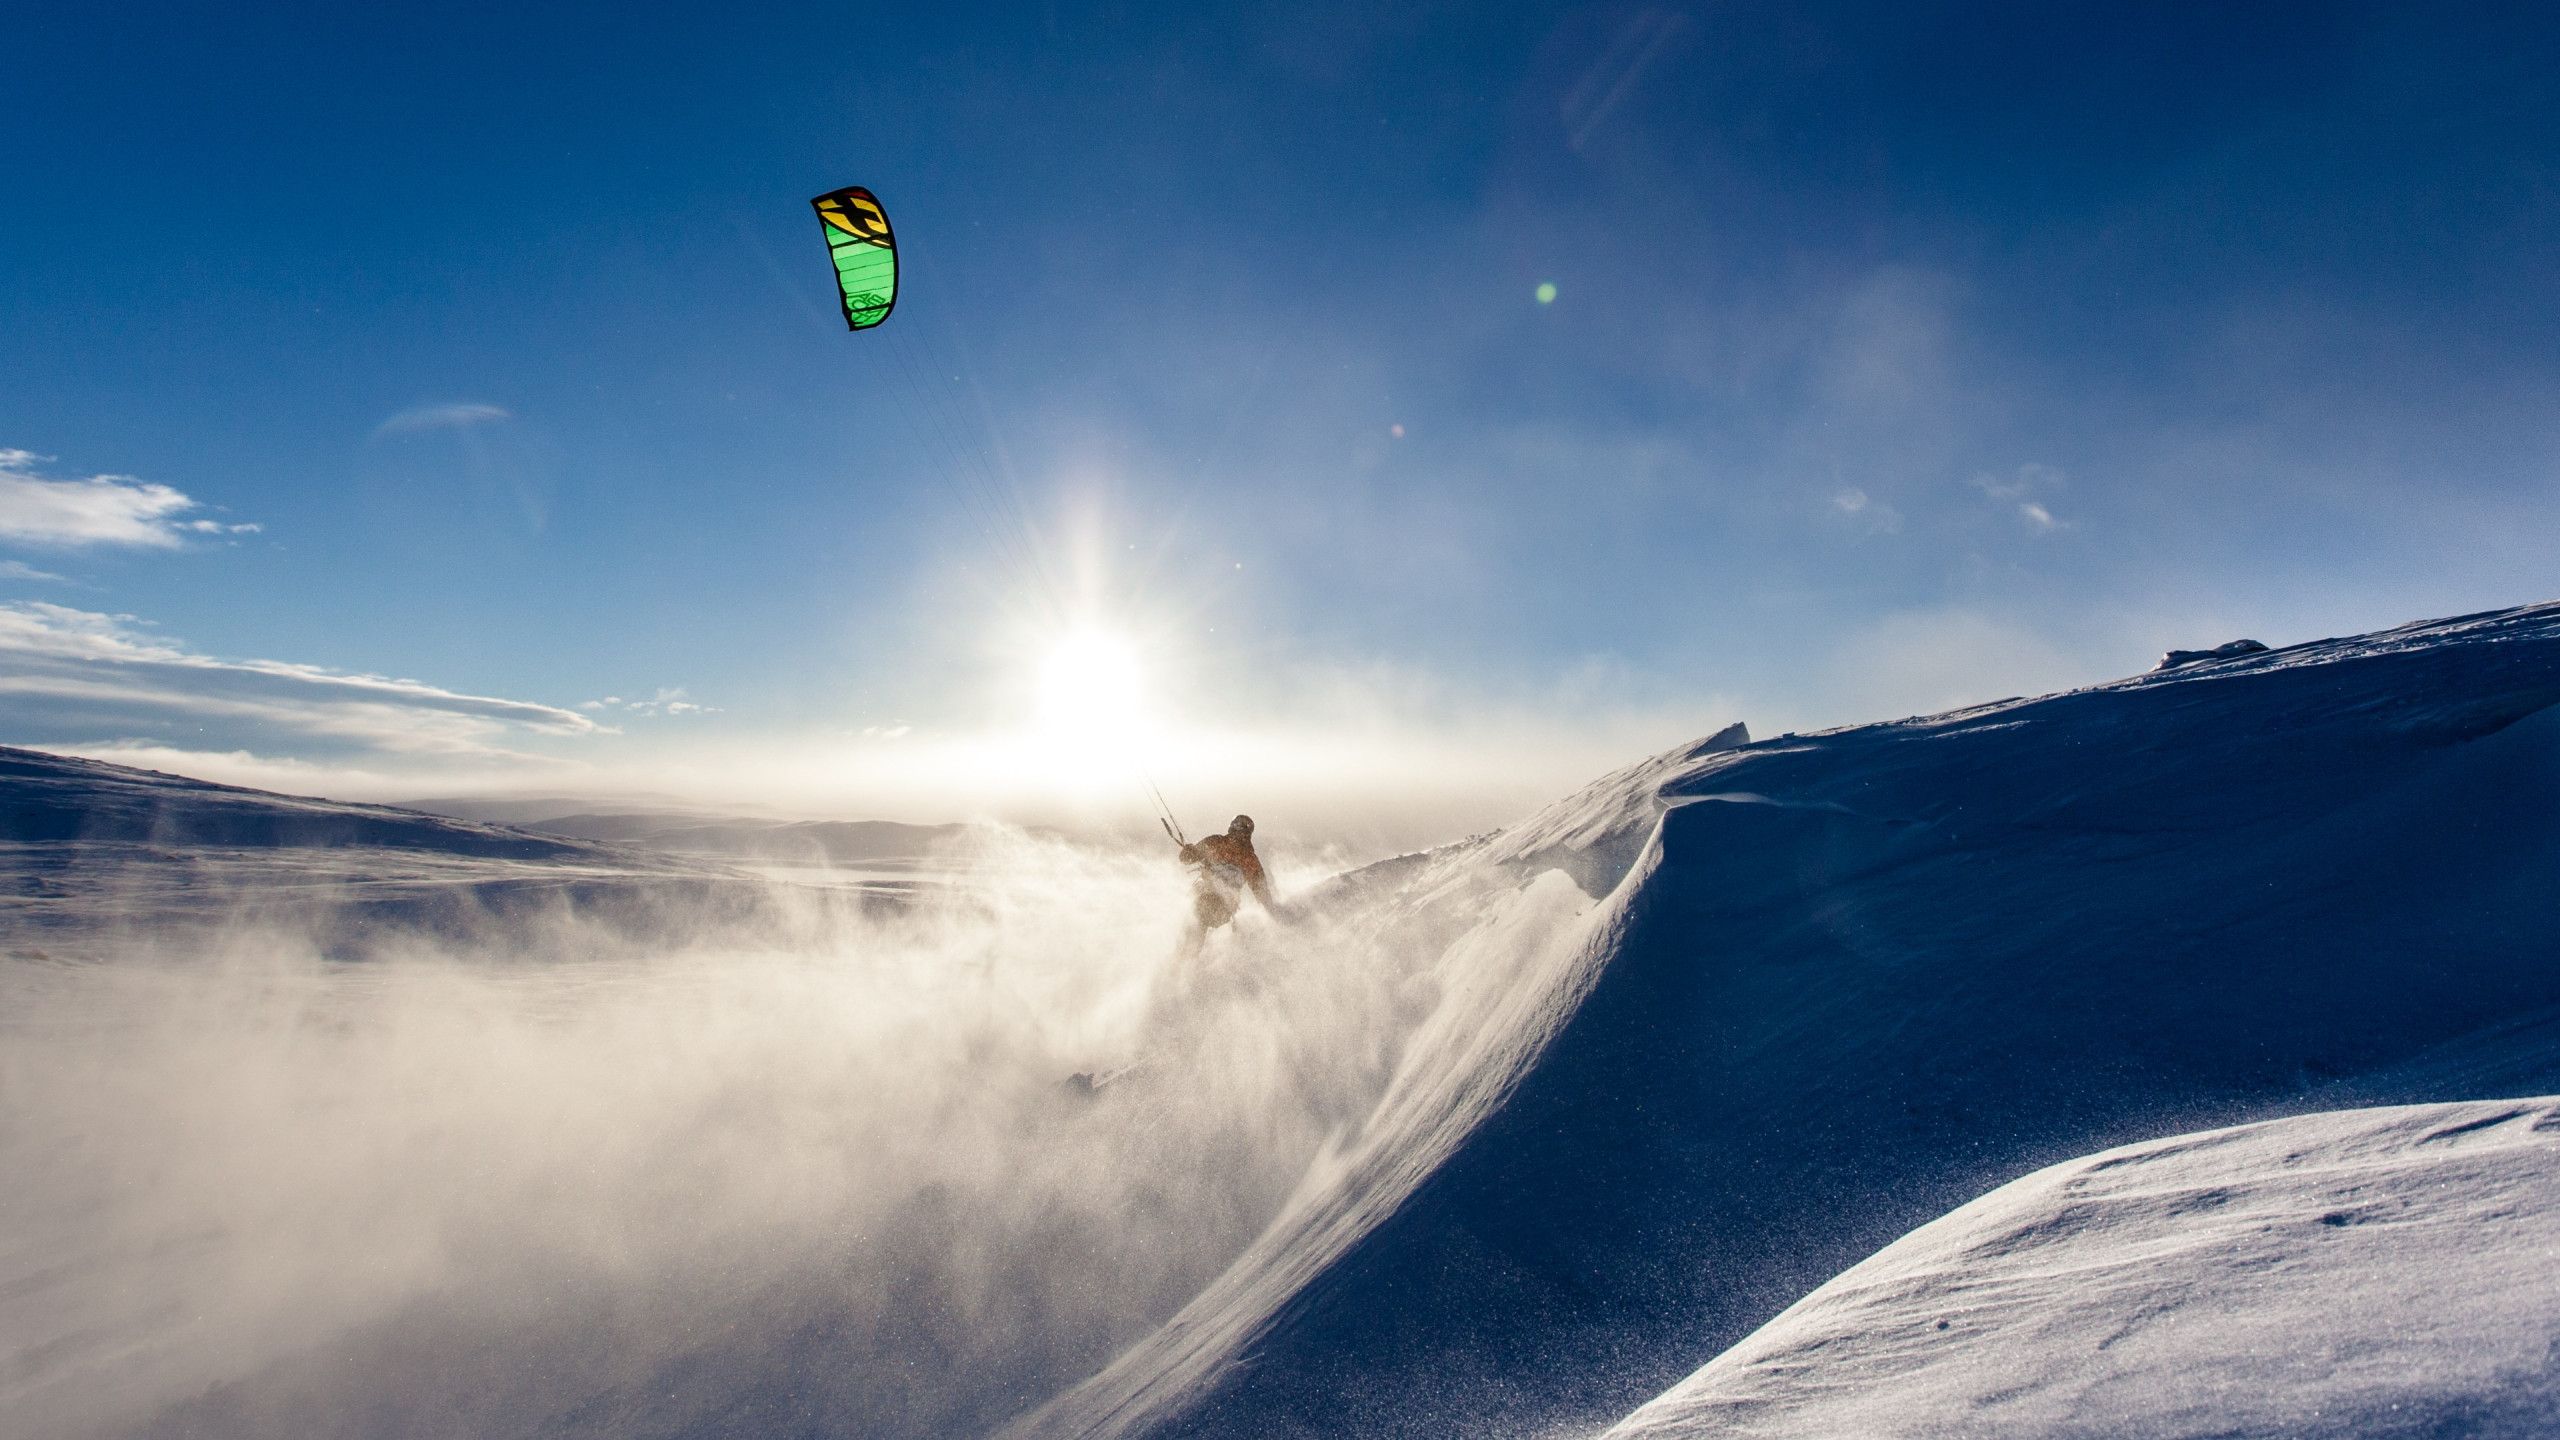 Kiteboarder on snow wallpaper 2560x1440